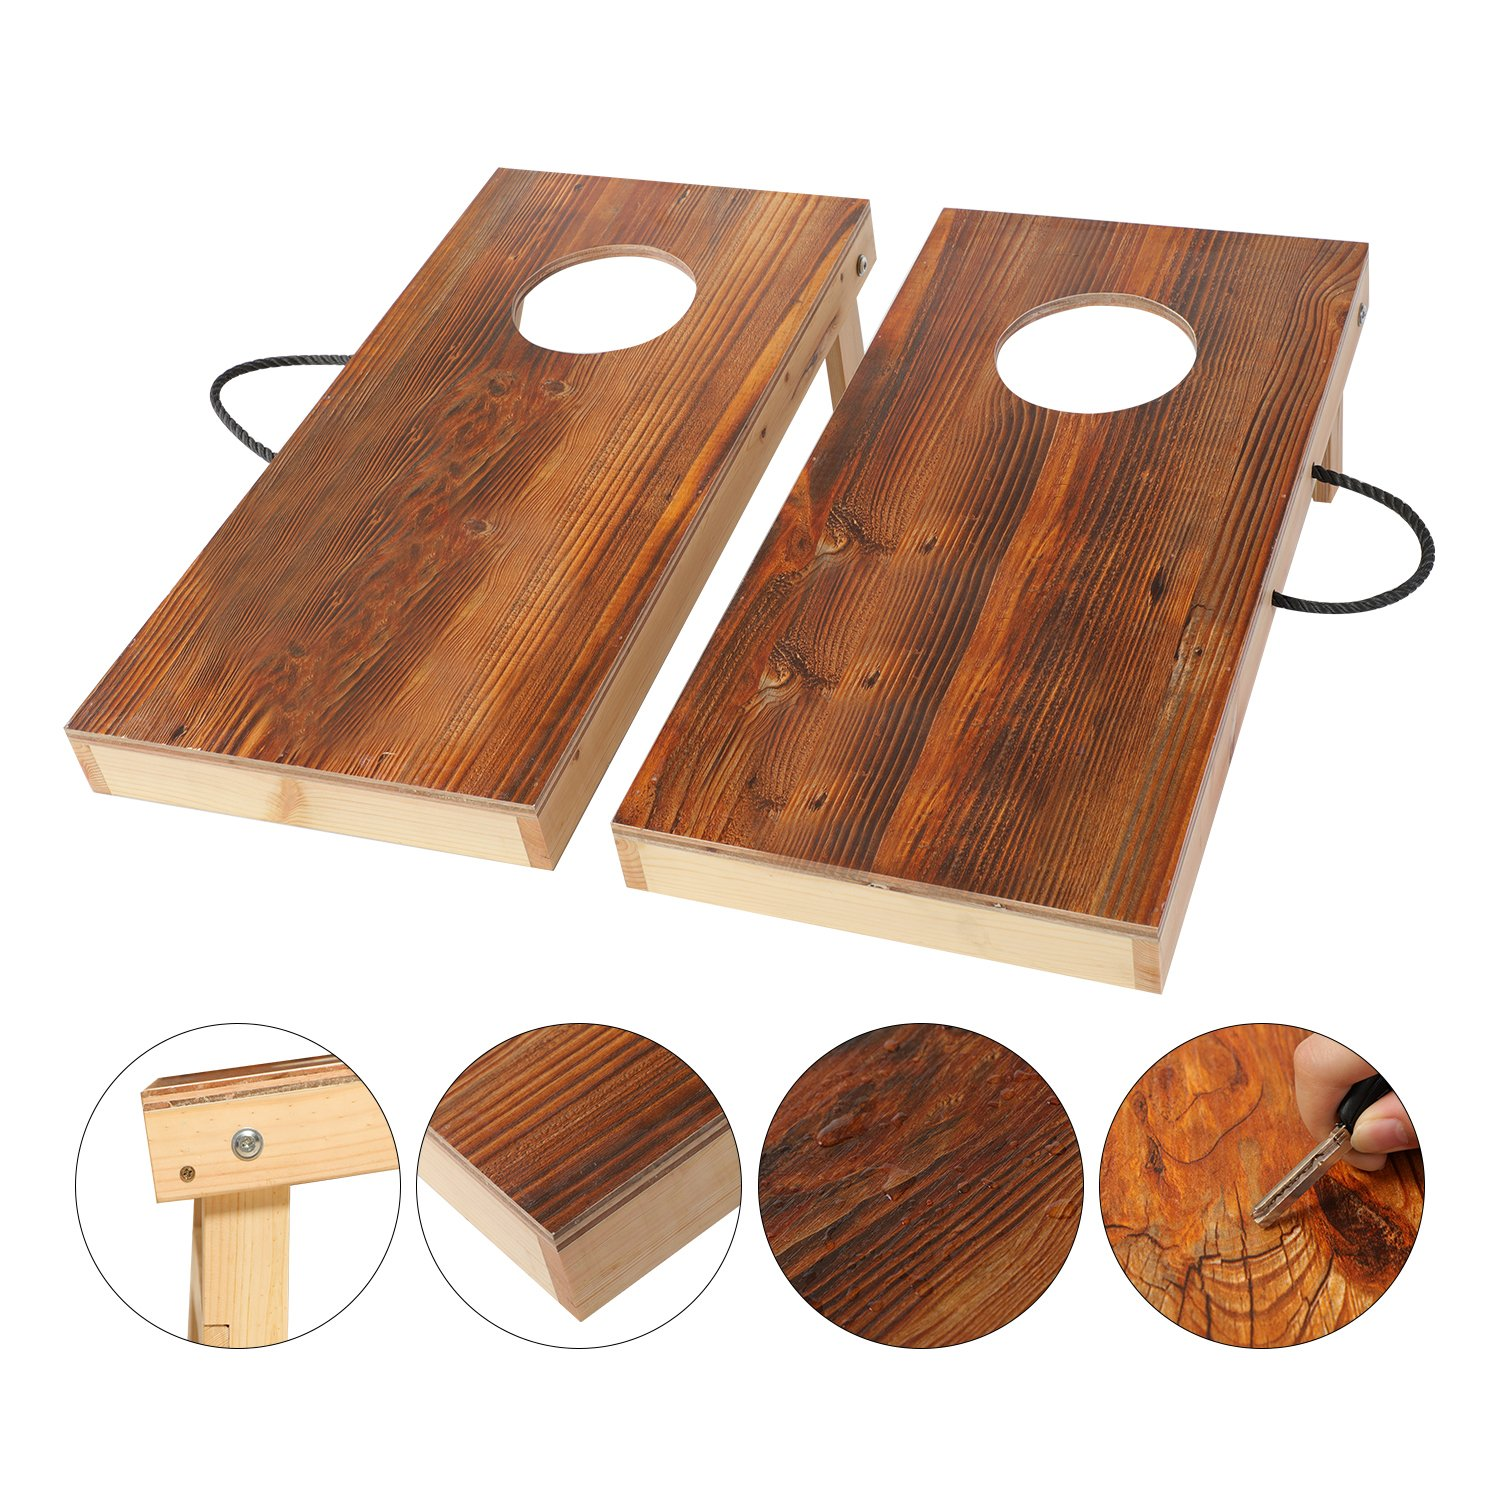 OOFIT Solid Wood Cornhole Set Junior Size, Portable Sports Cornhole Game Boards Set 2 by 1 feet, with 8 Bean Bags